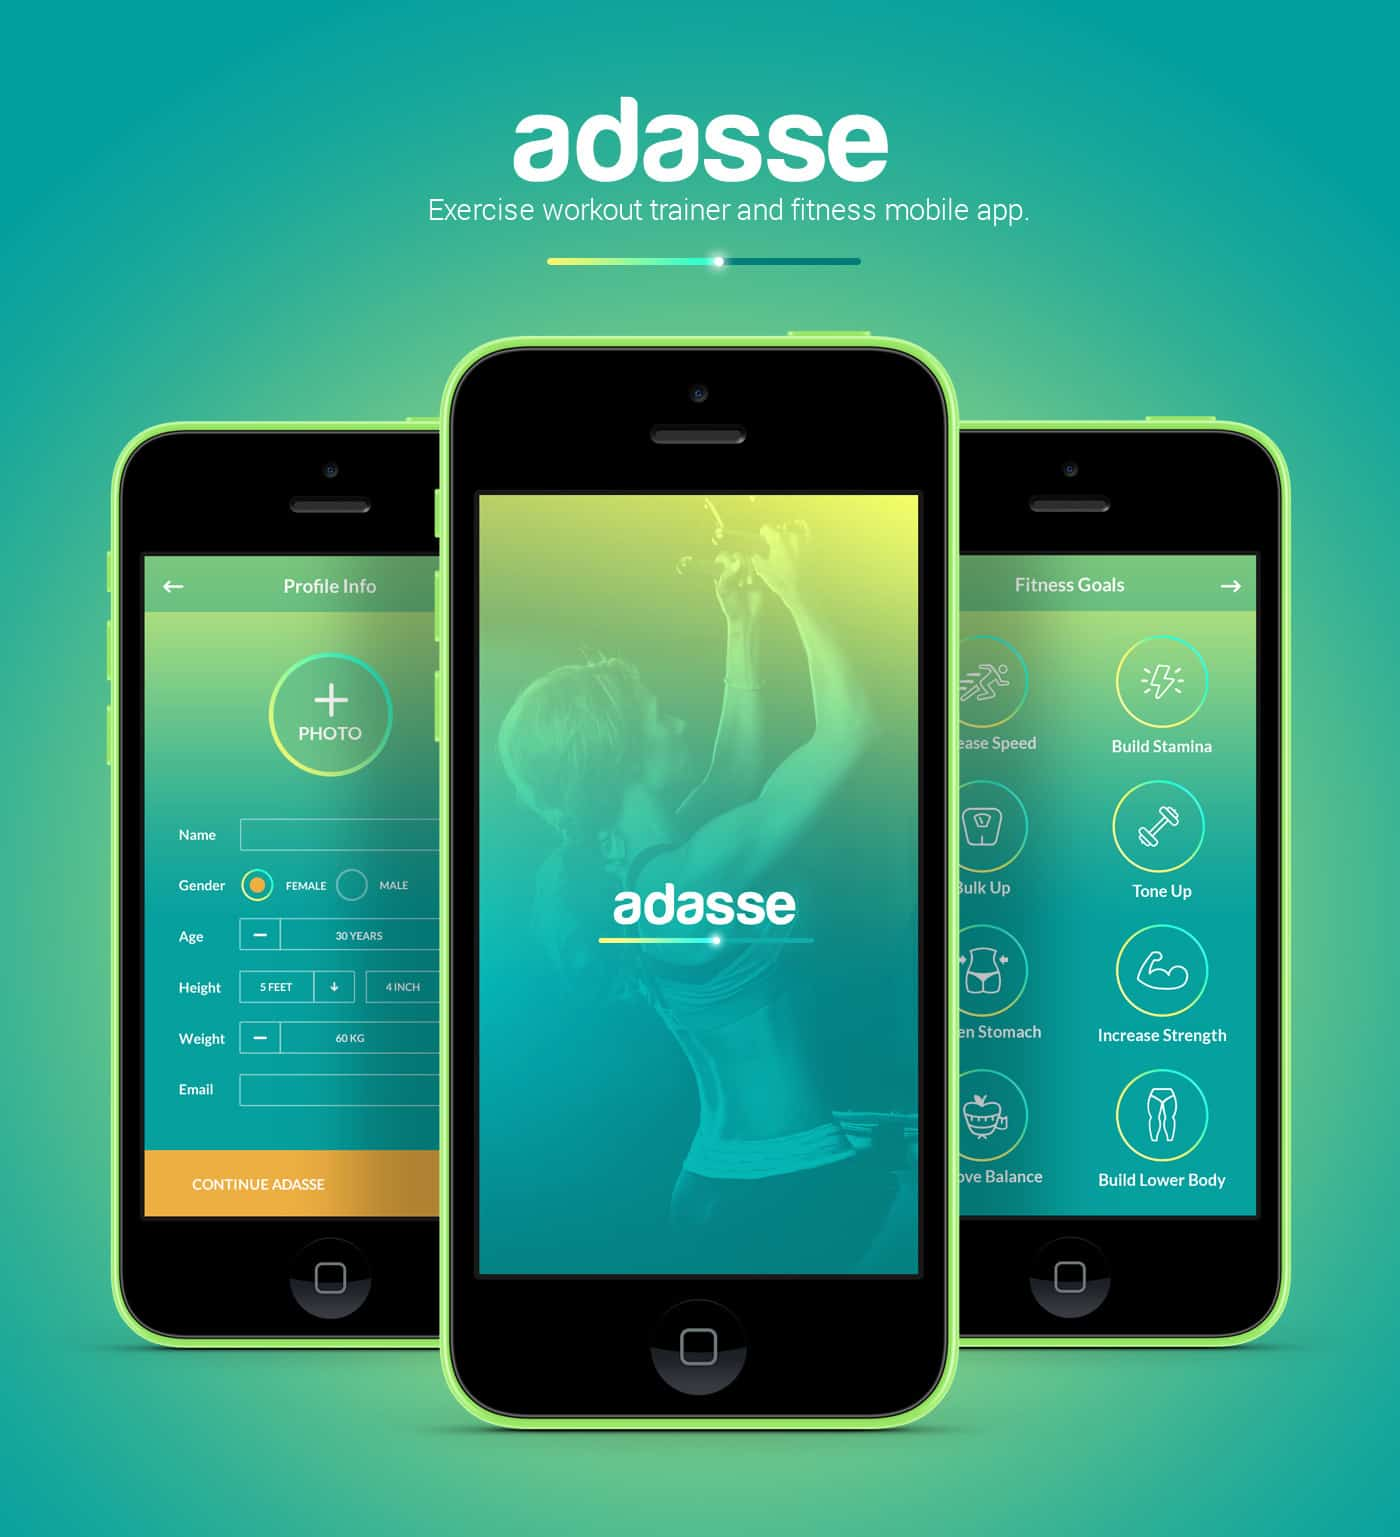 Adasse gym workout mobile app by naresh kumar design ideas for Designing an iphone app